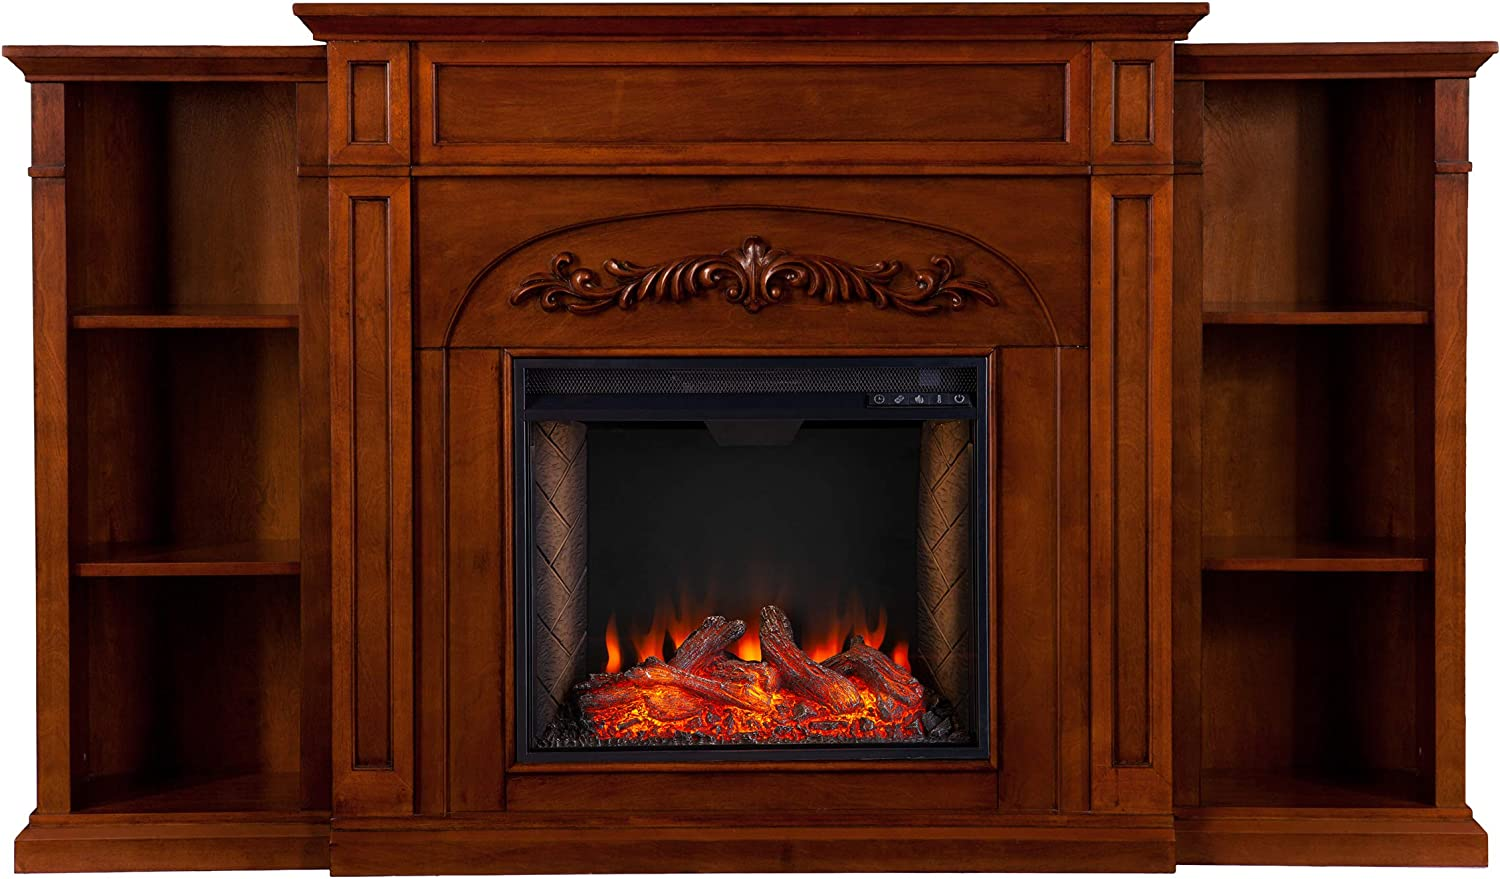 NEW ARRIVAL SEI Furniture Chantilly Alexa-Enabled Electric 信用 Firepla Bookcases